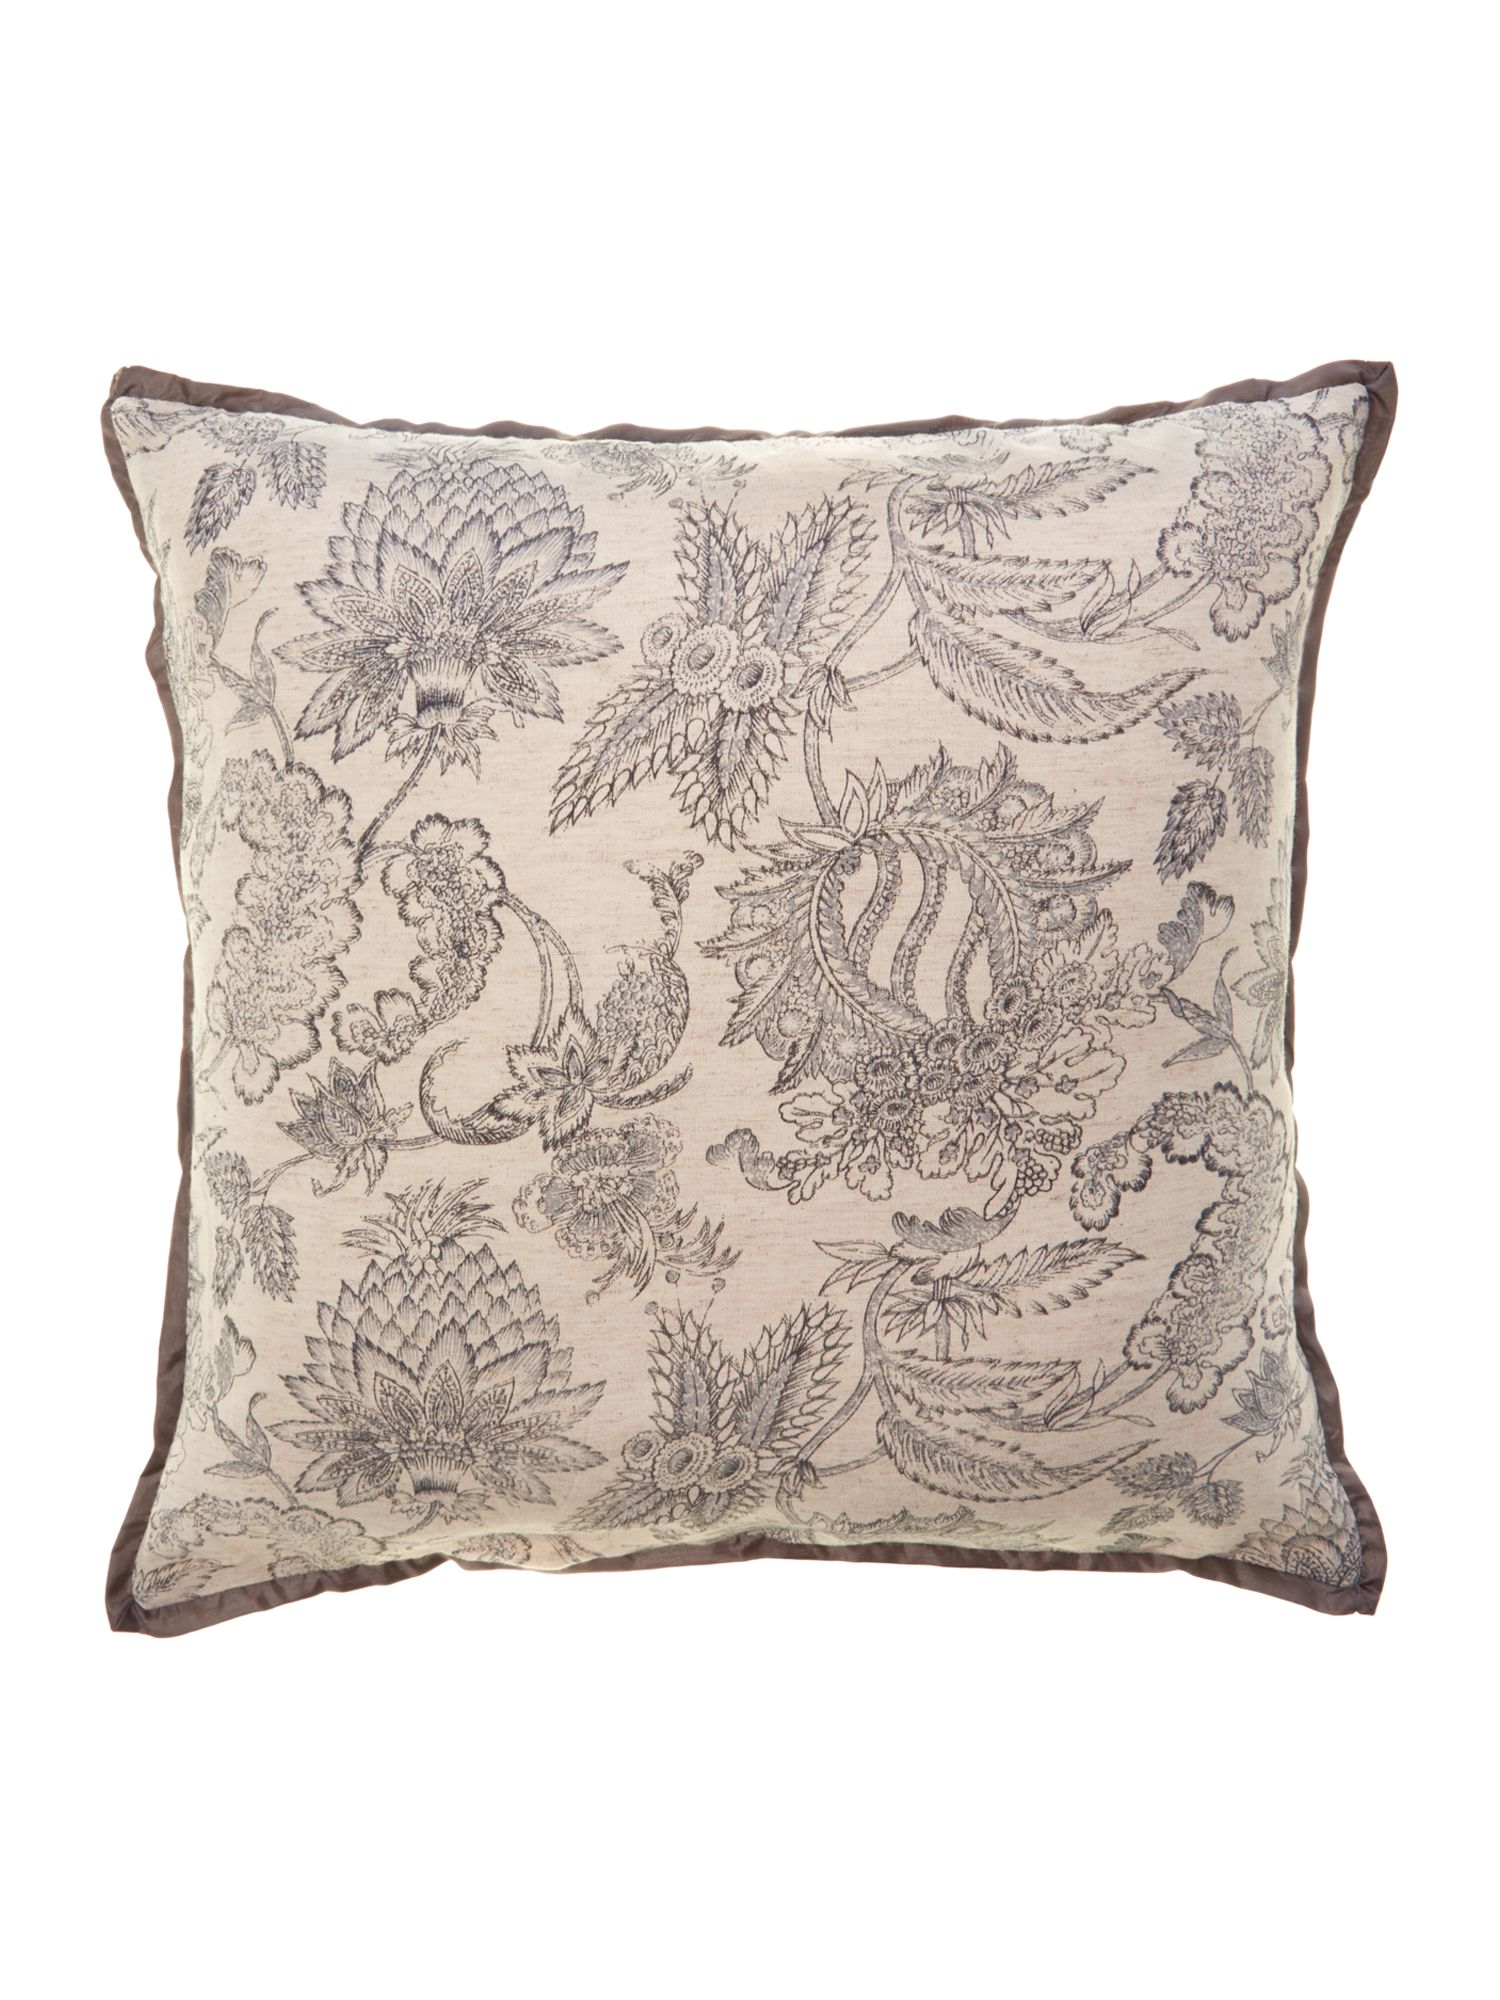 Grey oversized printed cushion